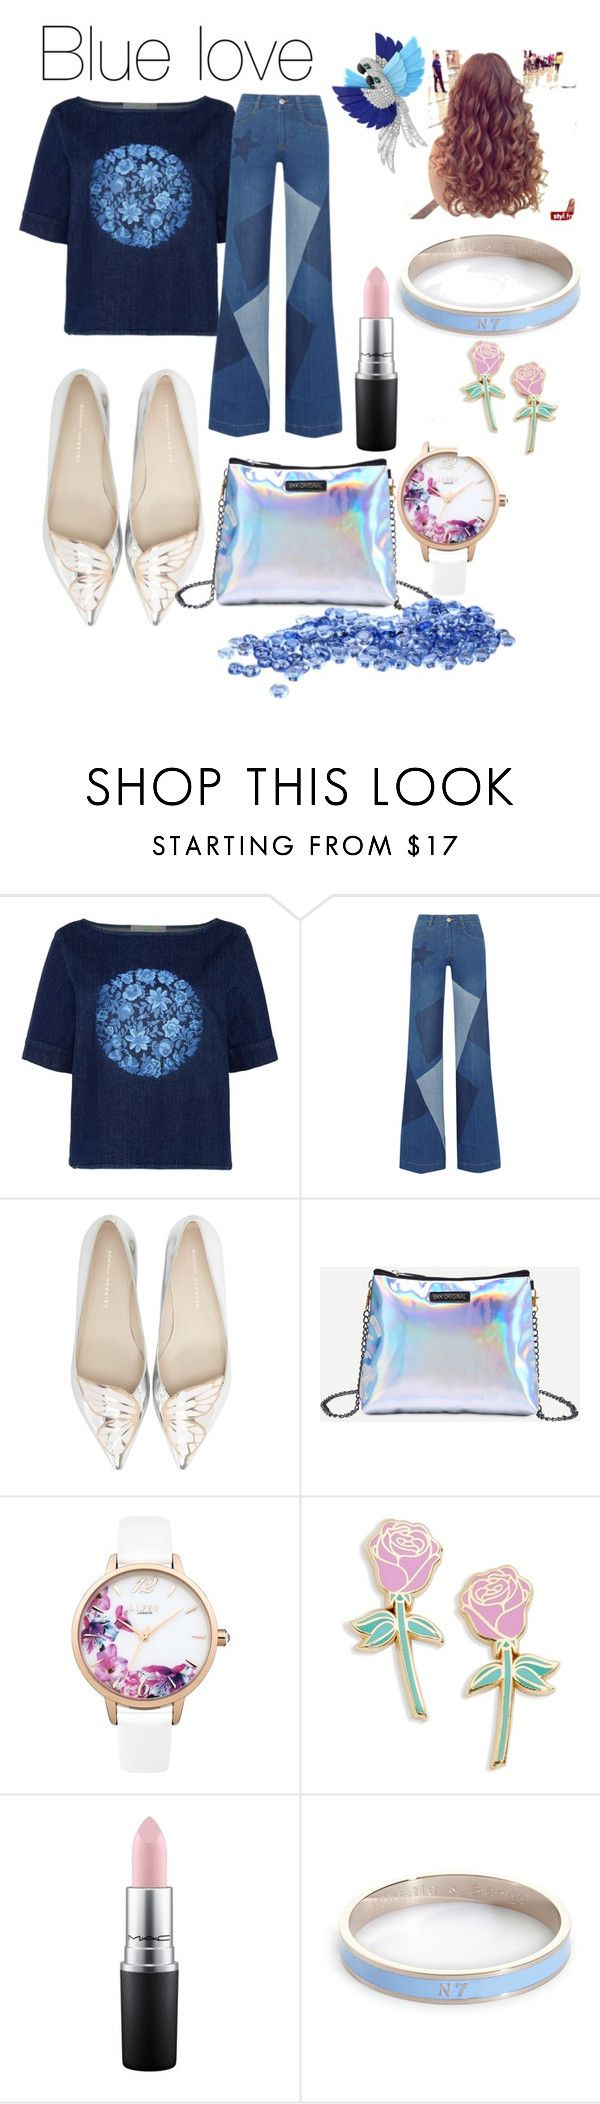 """Mavi aşk 🐟💎"" by cutelifelove ❤ liked on Polyvore featuring STELLA McCARTNEY, Sophia Webster, Lipsy, Big Bud Press, MAC Cosmetics, Whistle & Bango and Arca"